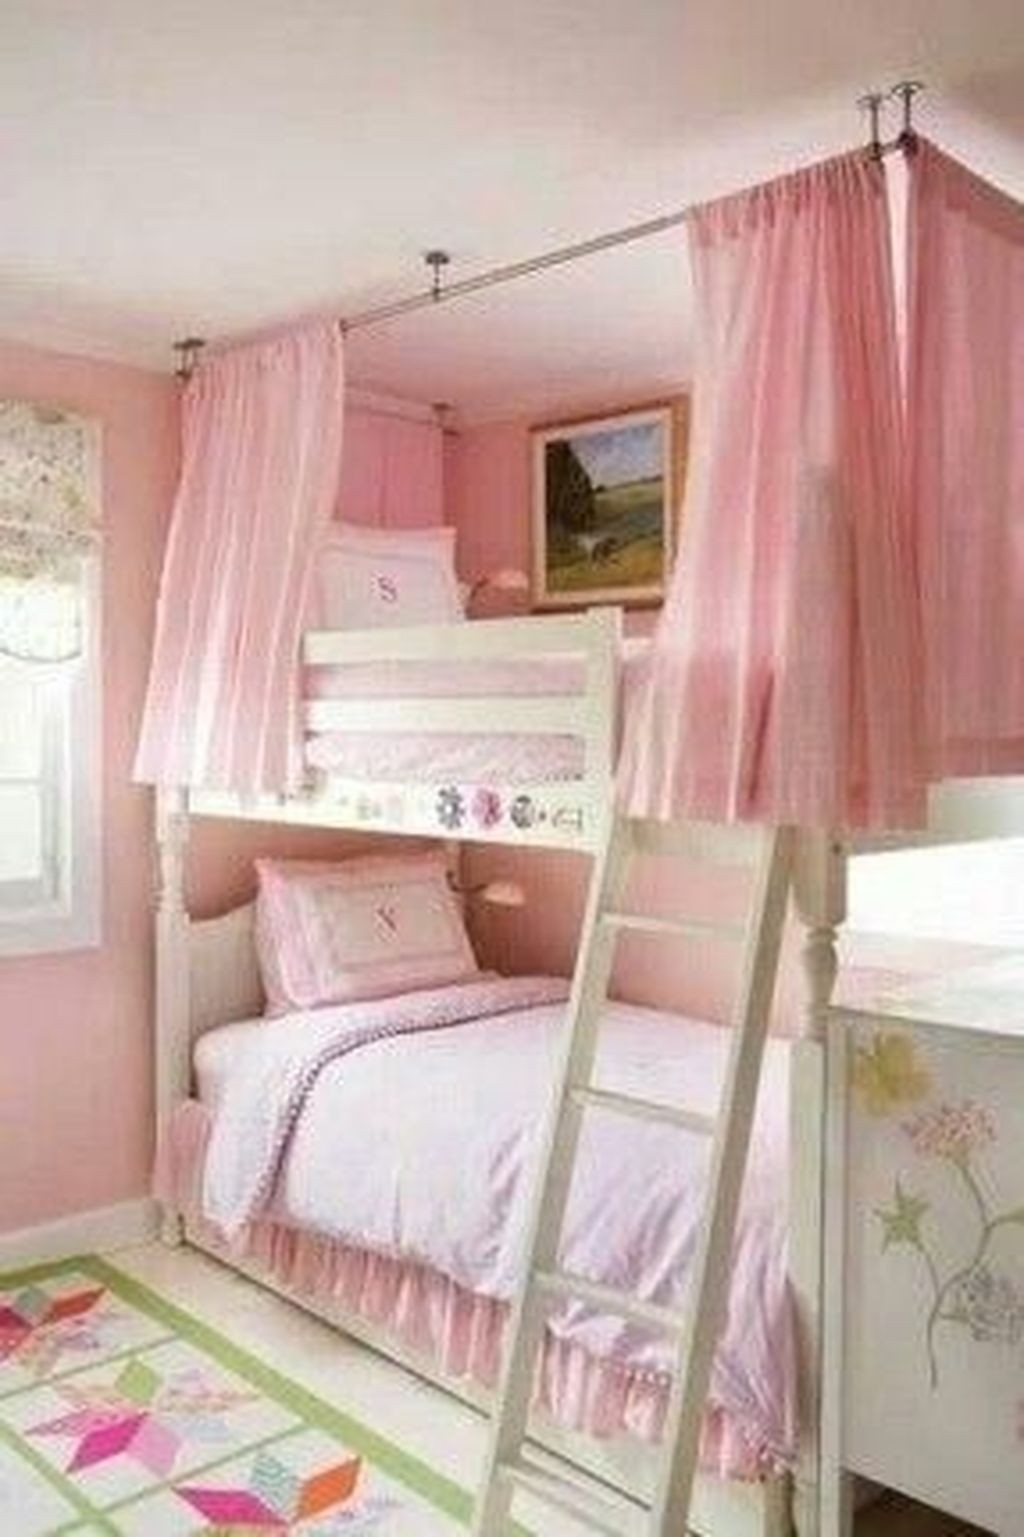 Tent bunk beds : bunk bed canopy ideas - memphite.com